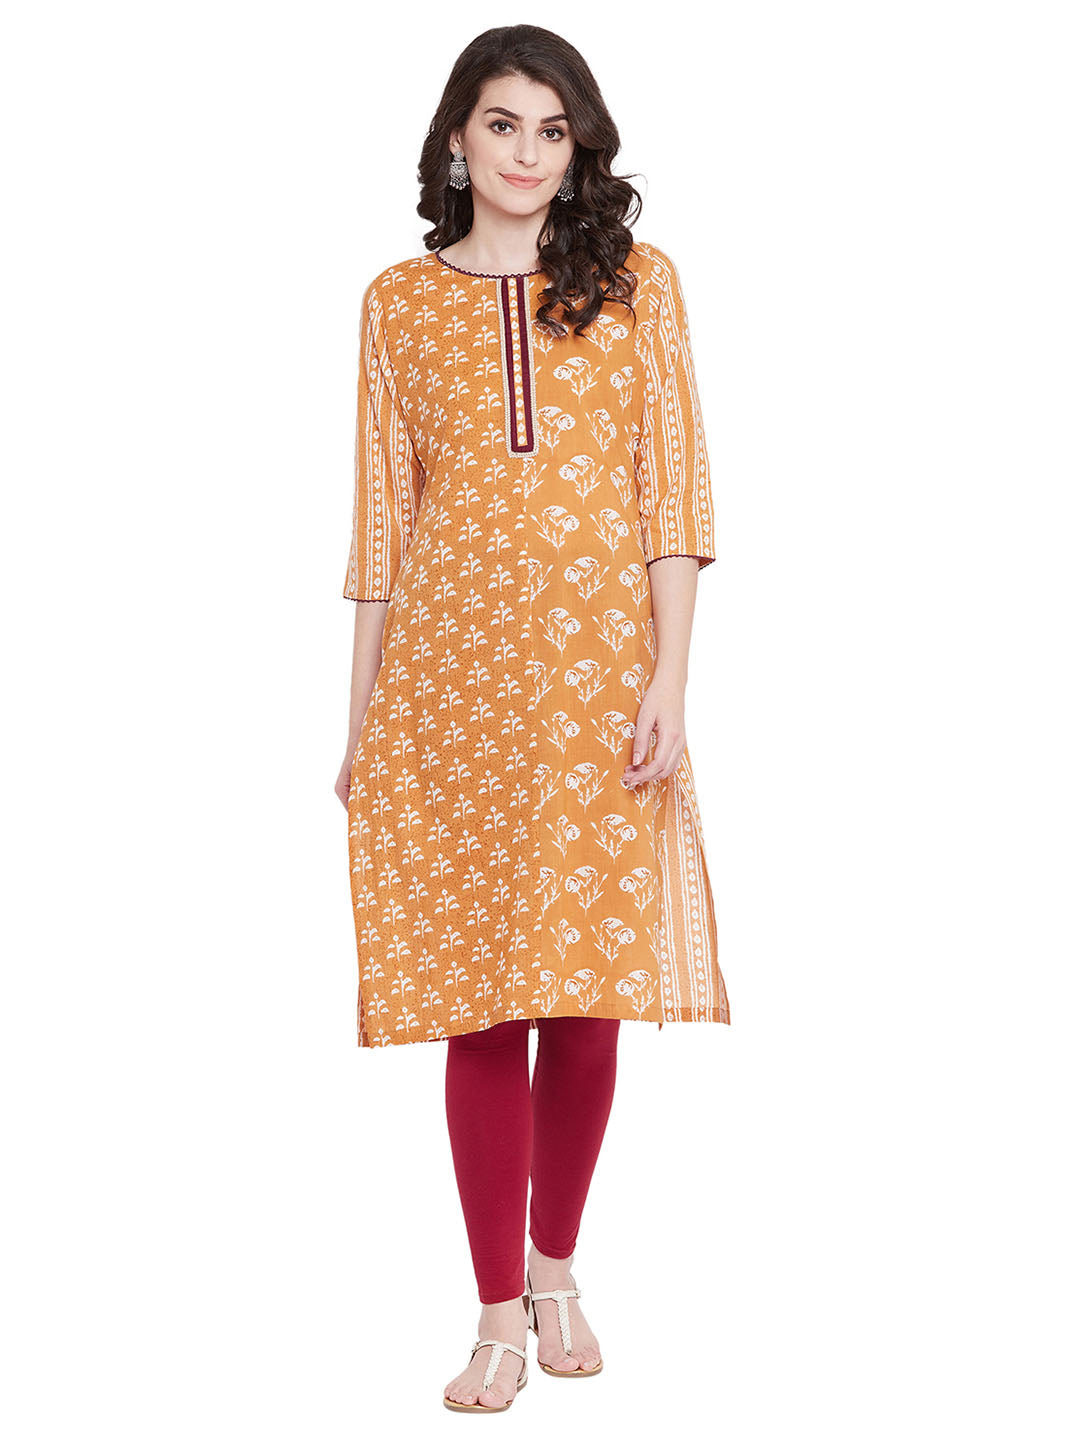 MEESAN Mustard Cotton Printed Kurti for Women